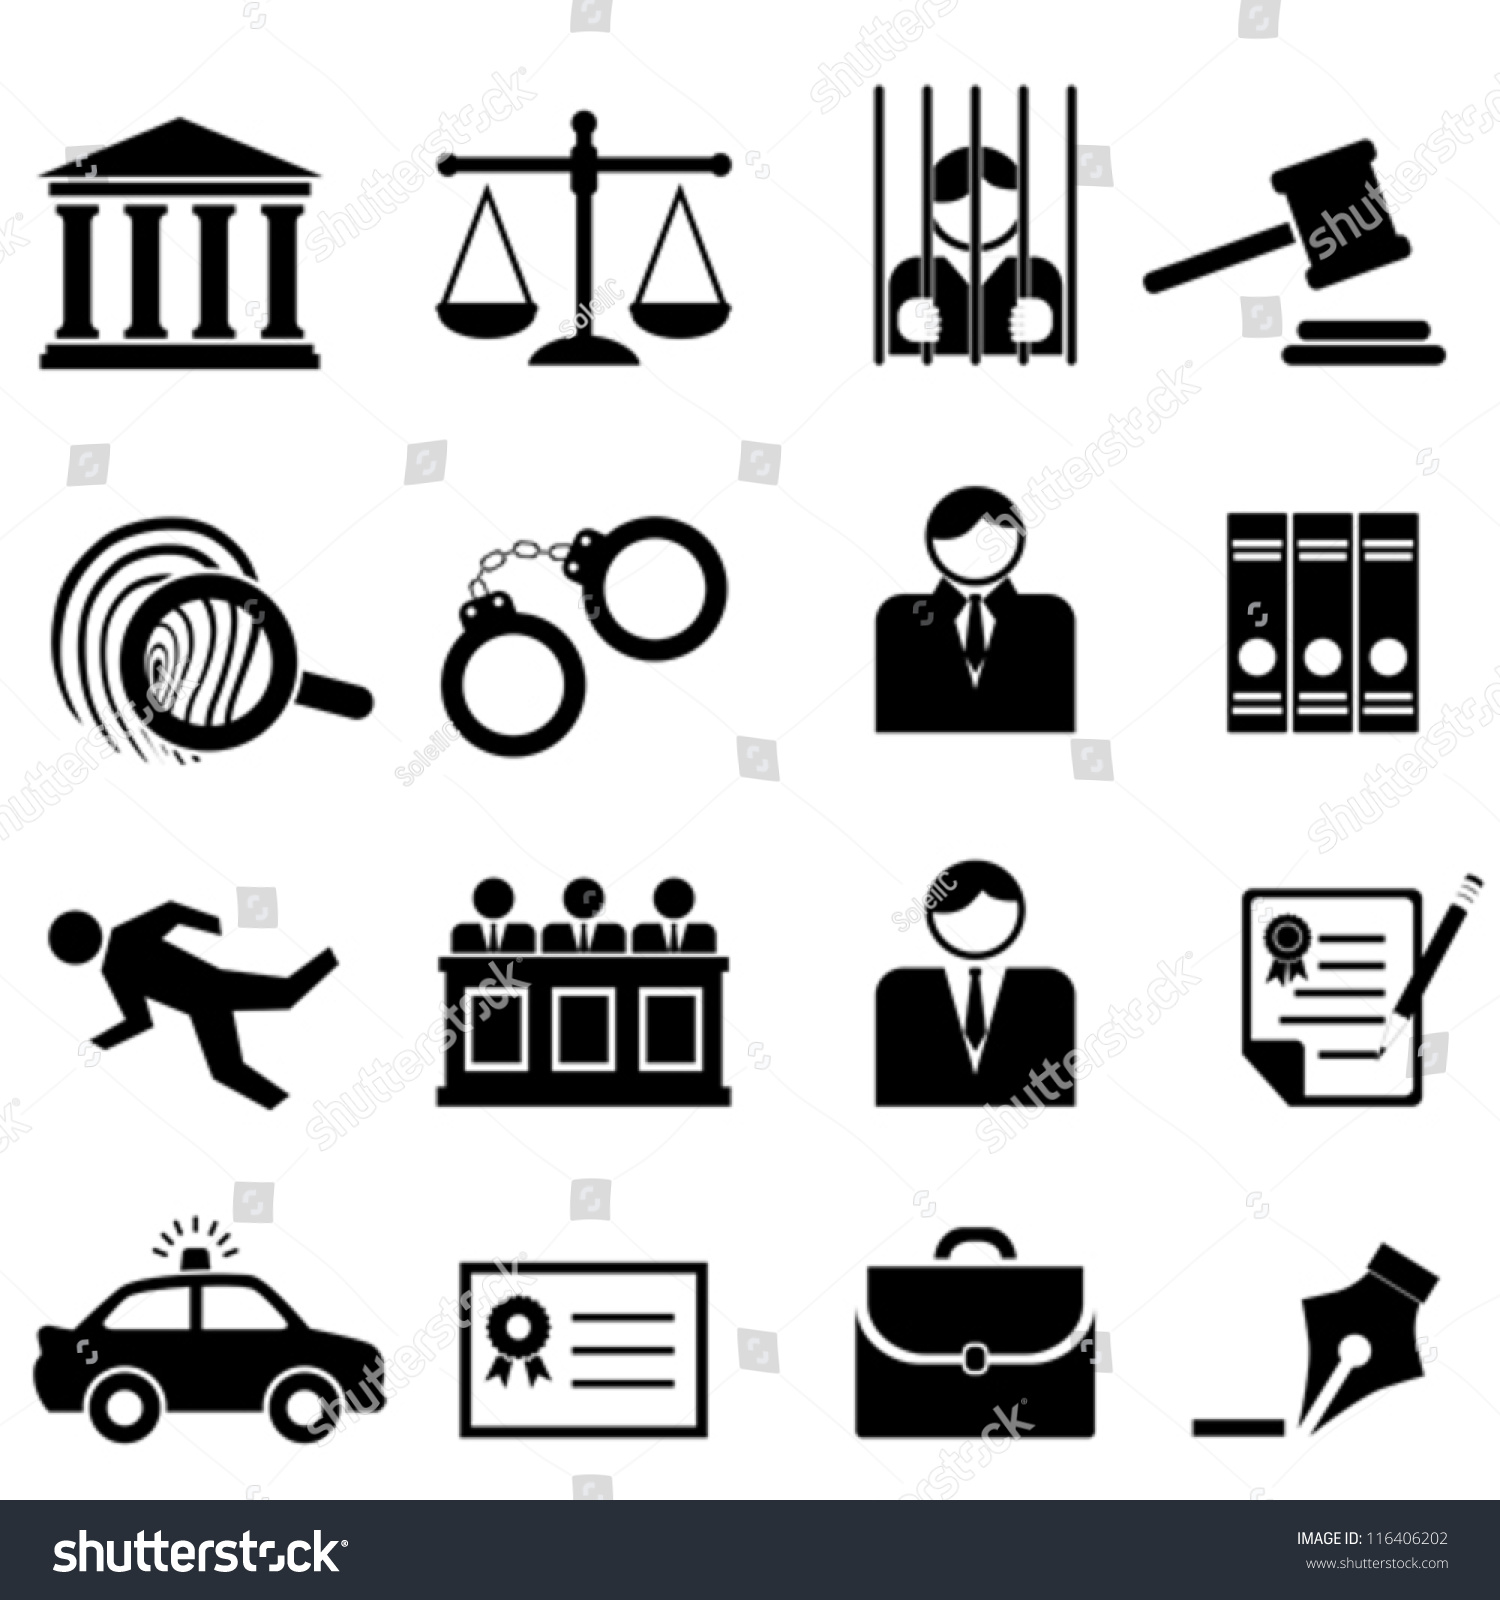 Legal, Law And Justice Icon Set Stock Vector Illustration ...